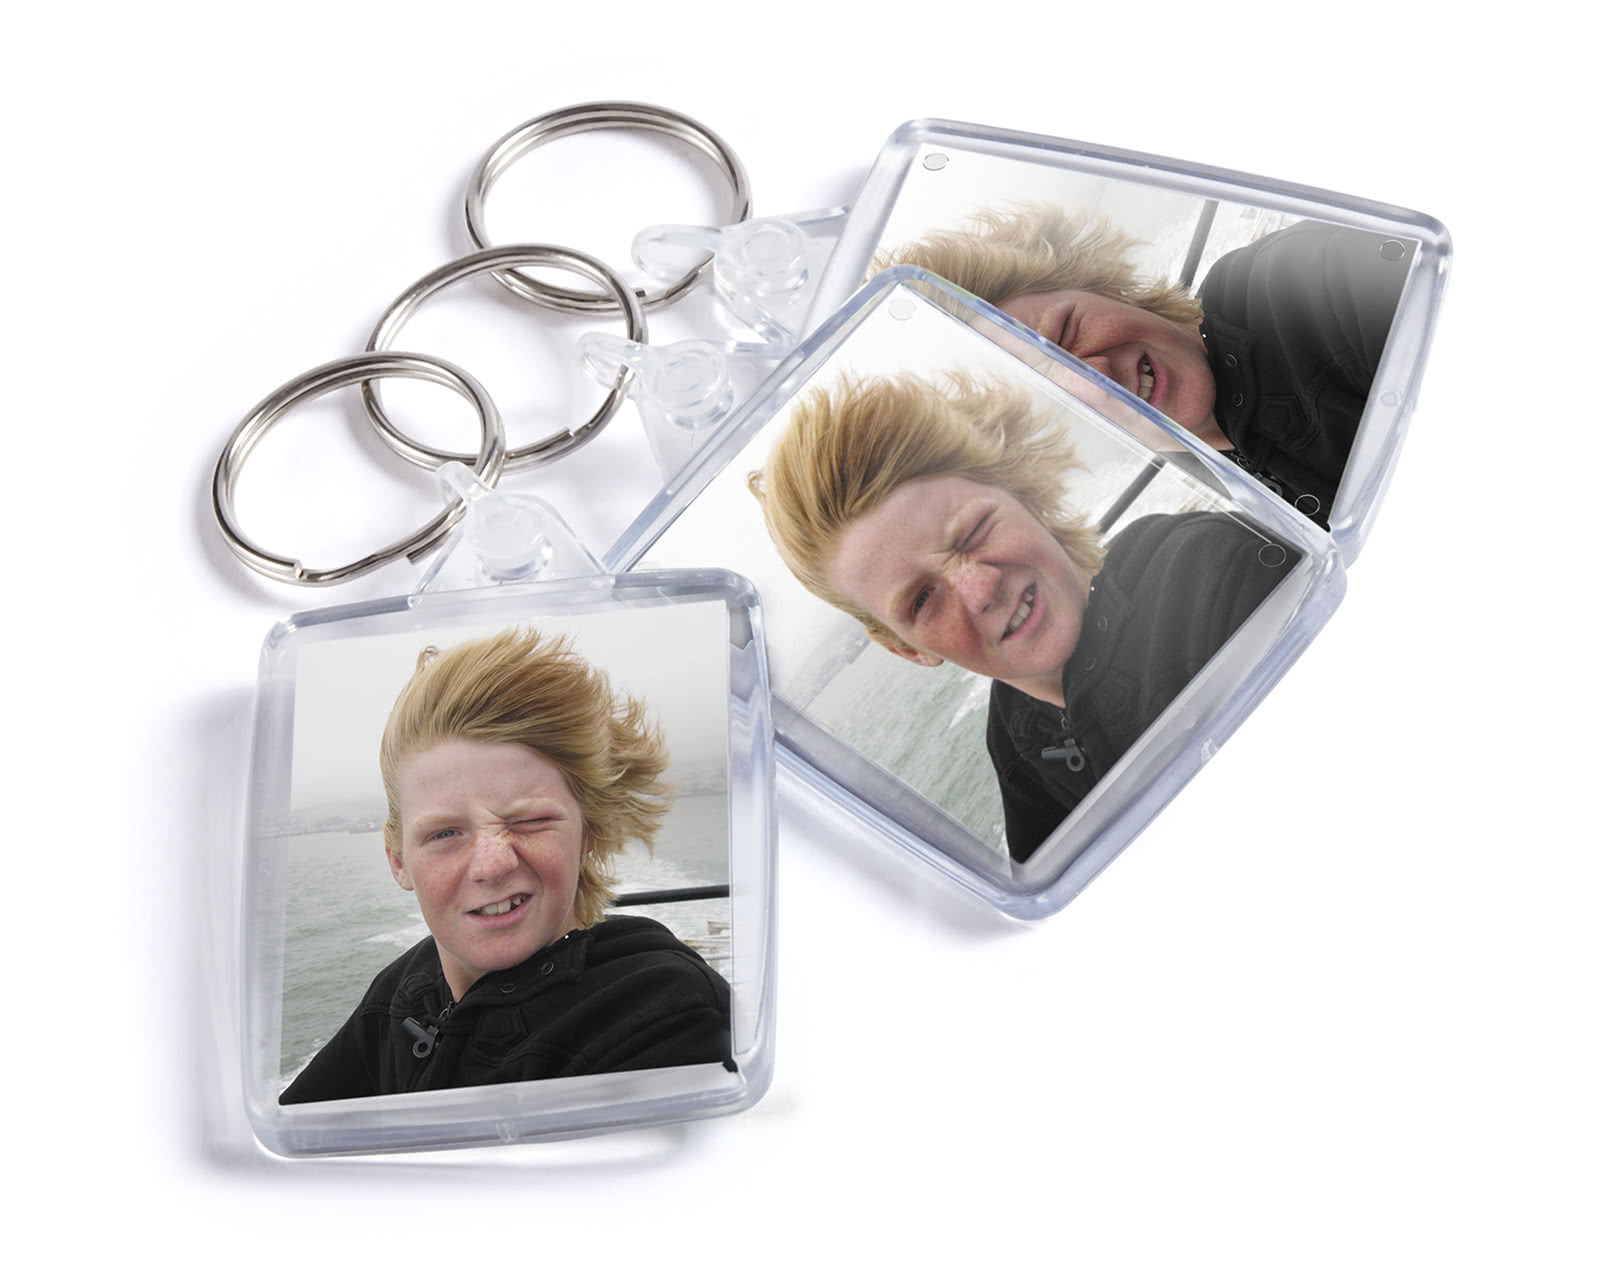 Porte-clé photo – idée cadeau photo - Photobox c03396f5cab